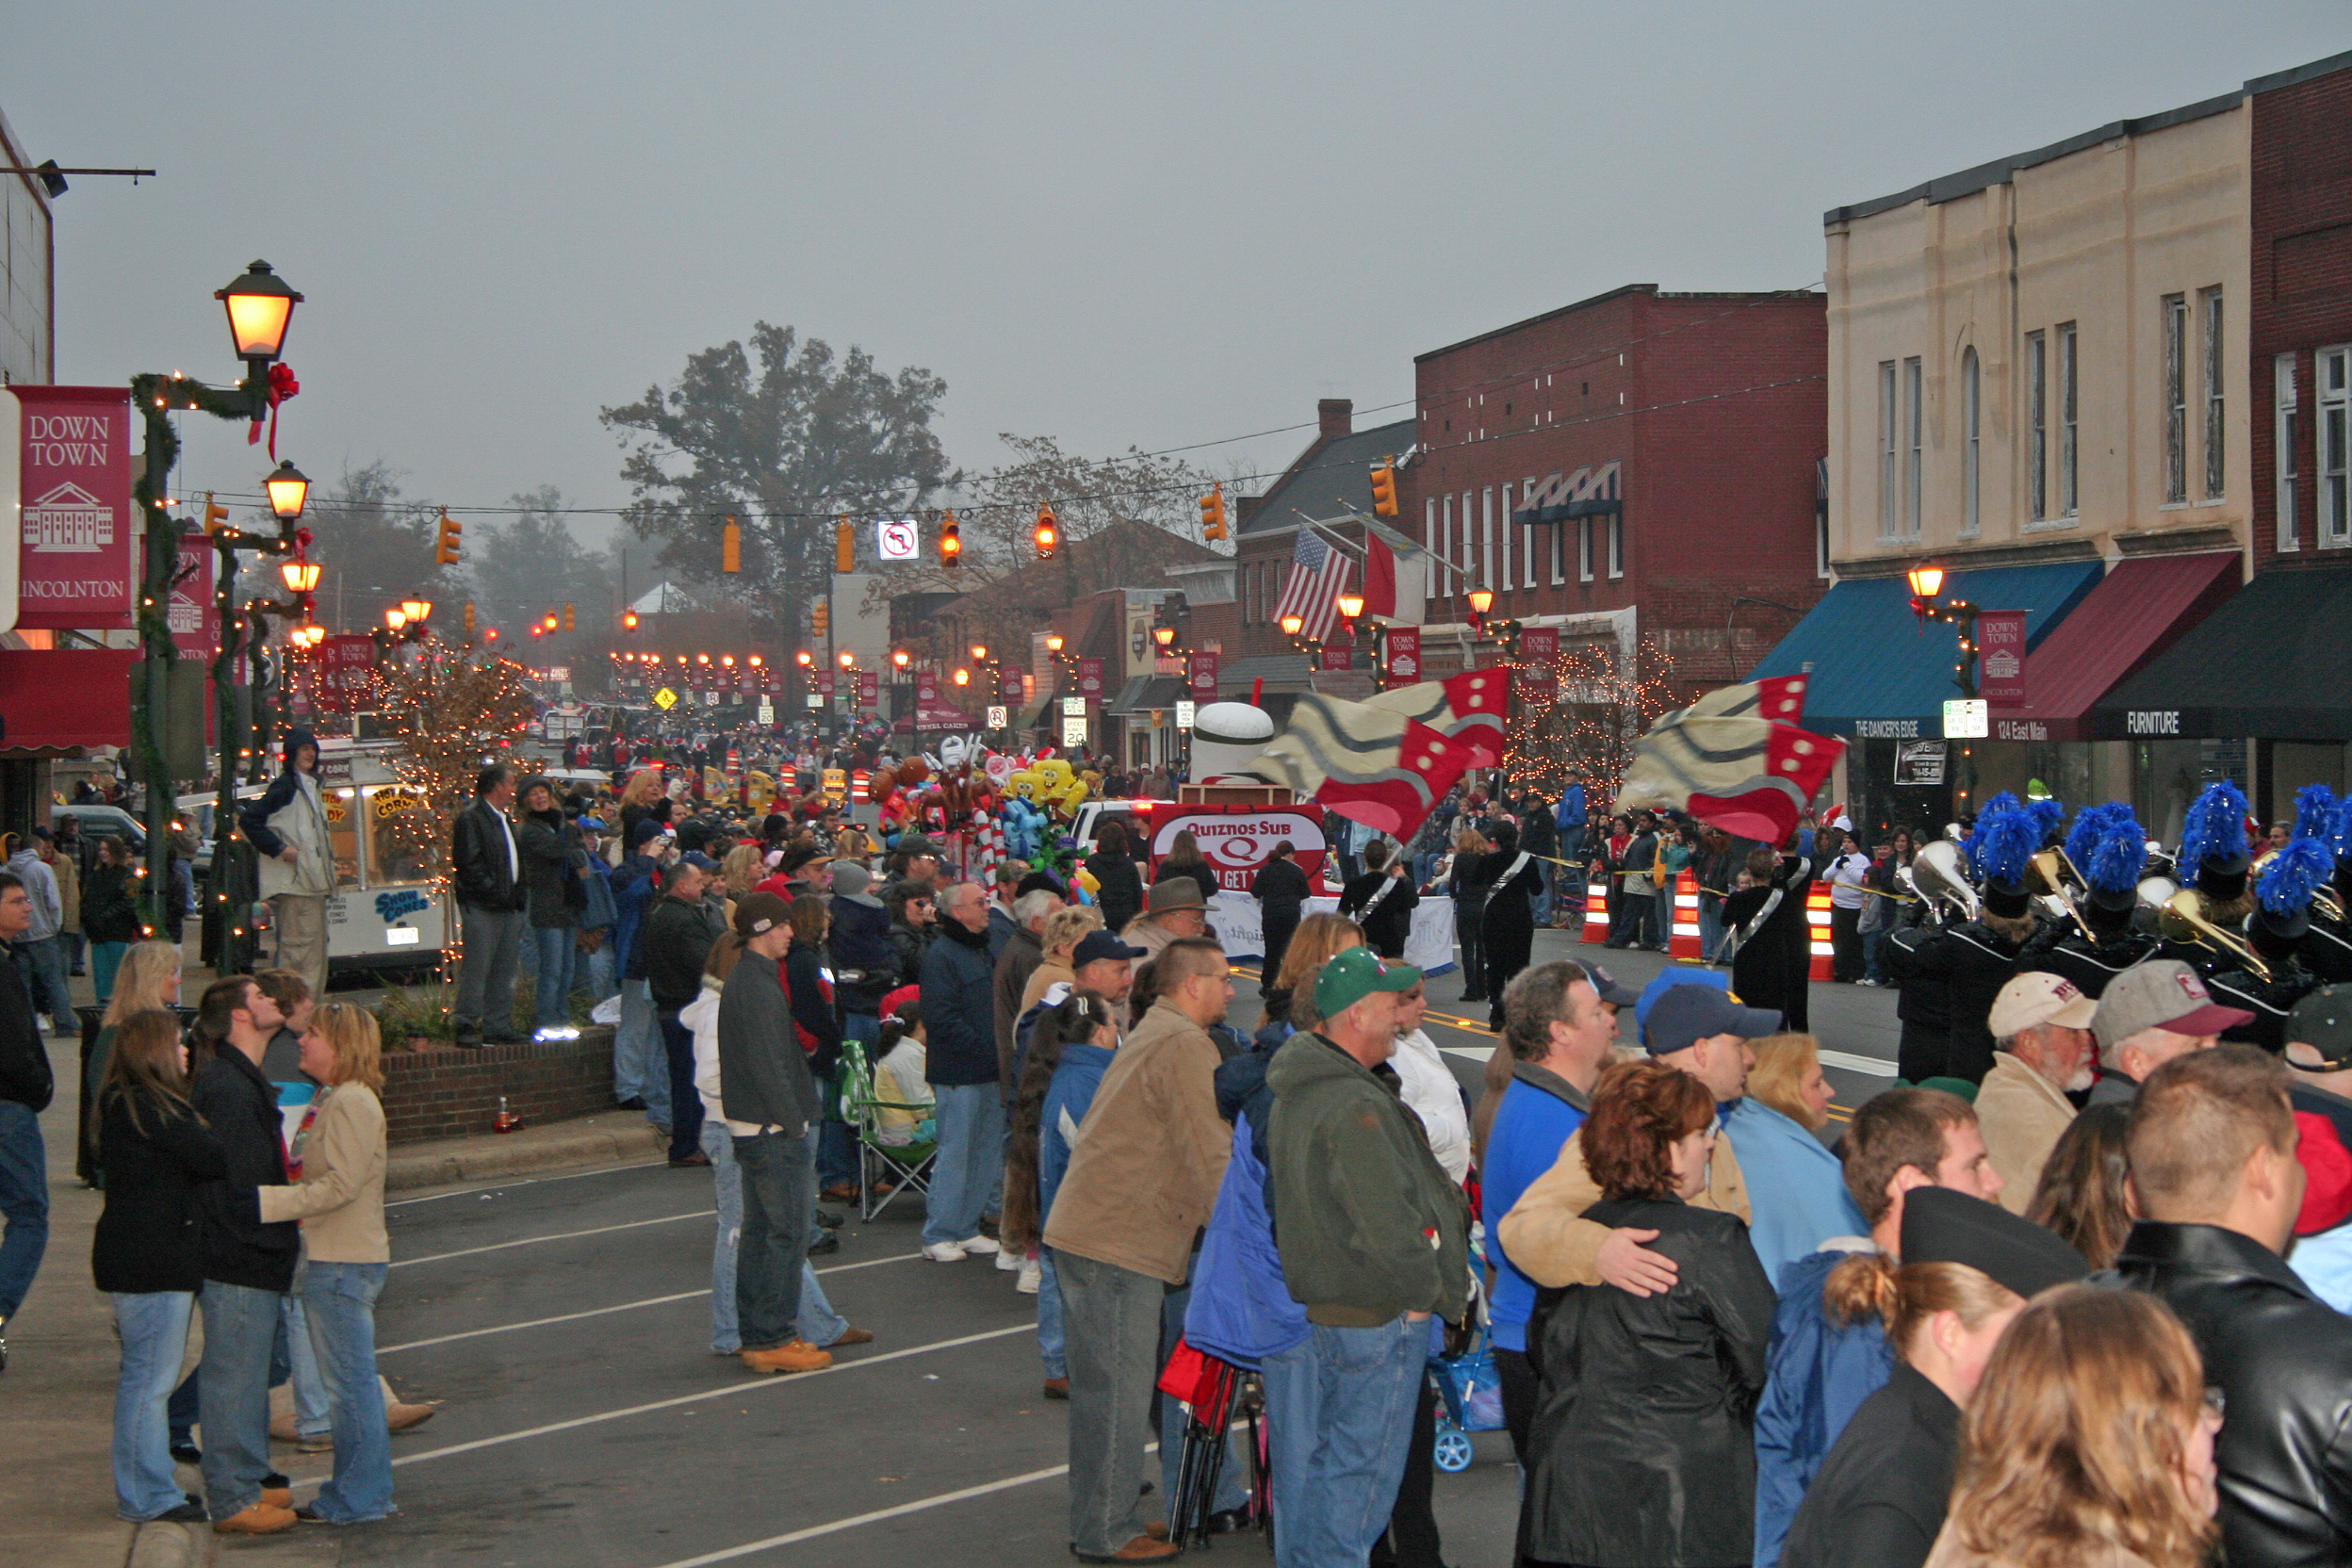 People gather for a parade on a foggy day